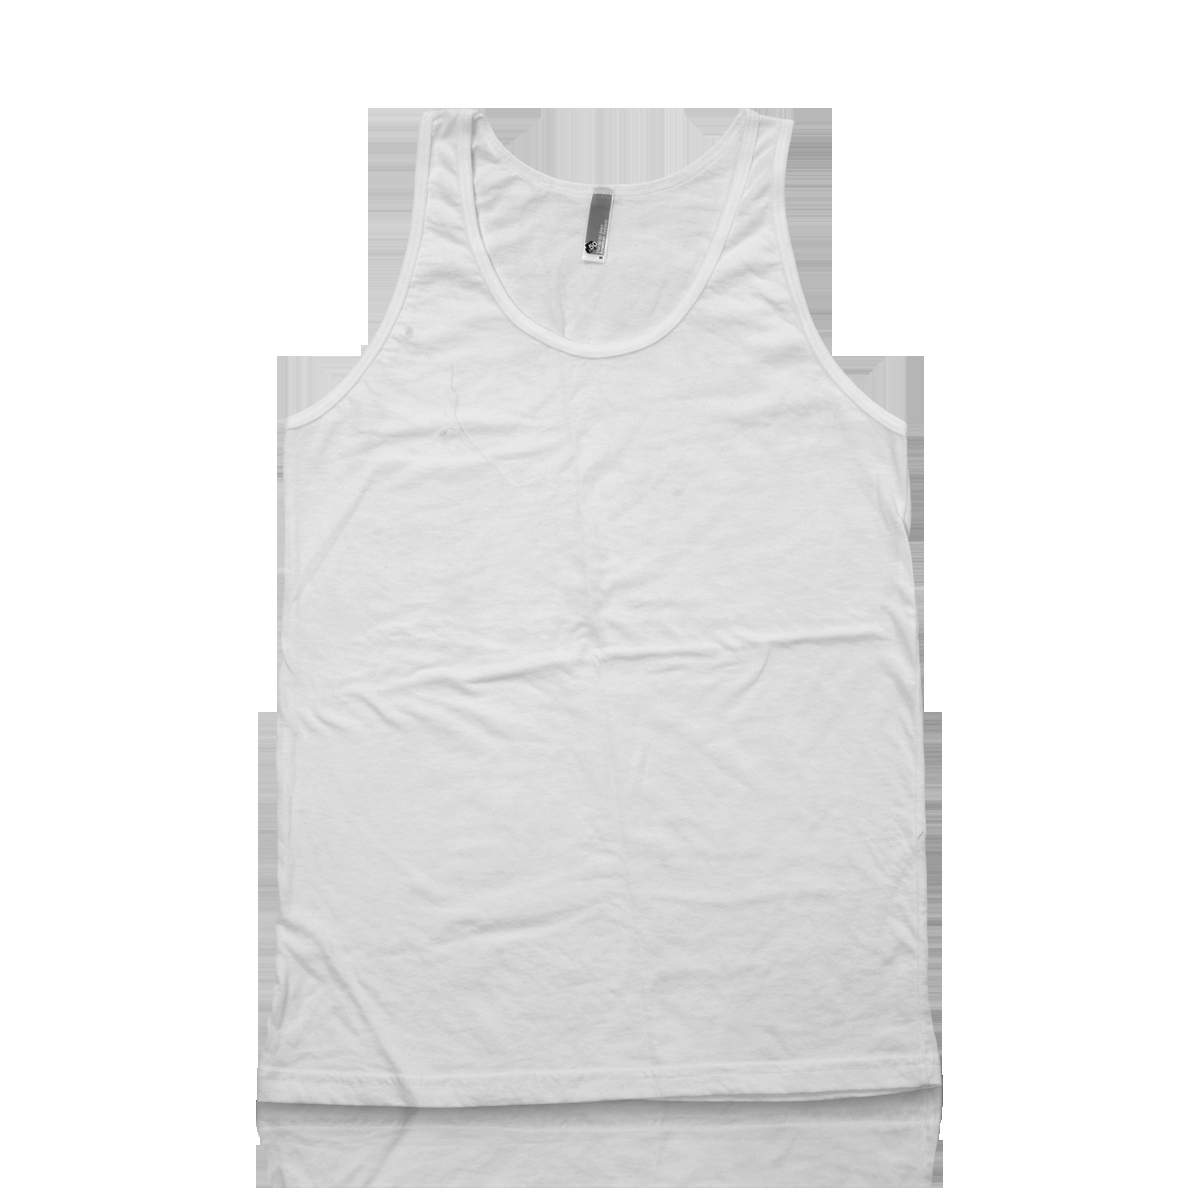 Tank top Template Fresh Sublimation Tank